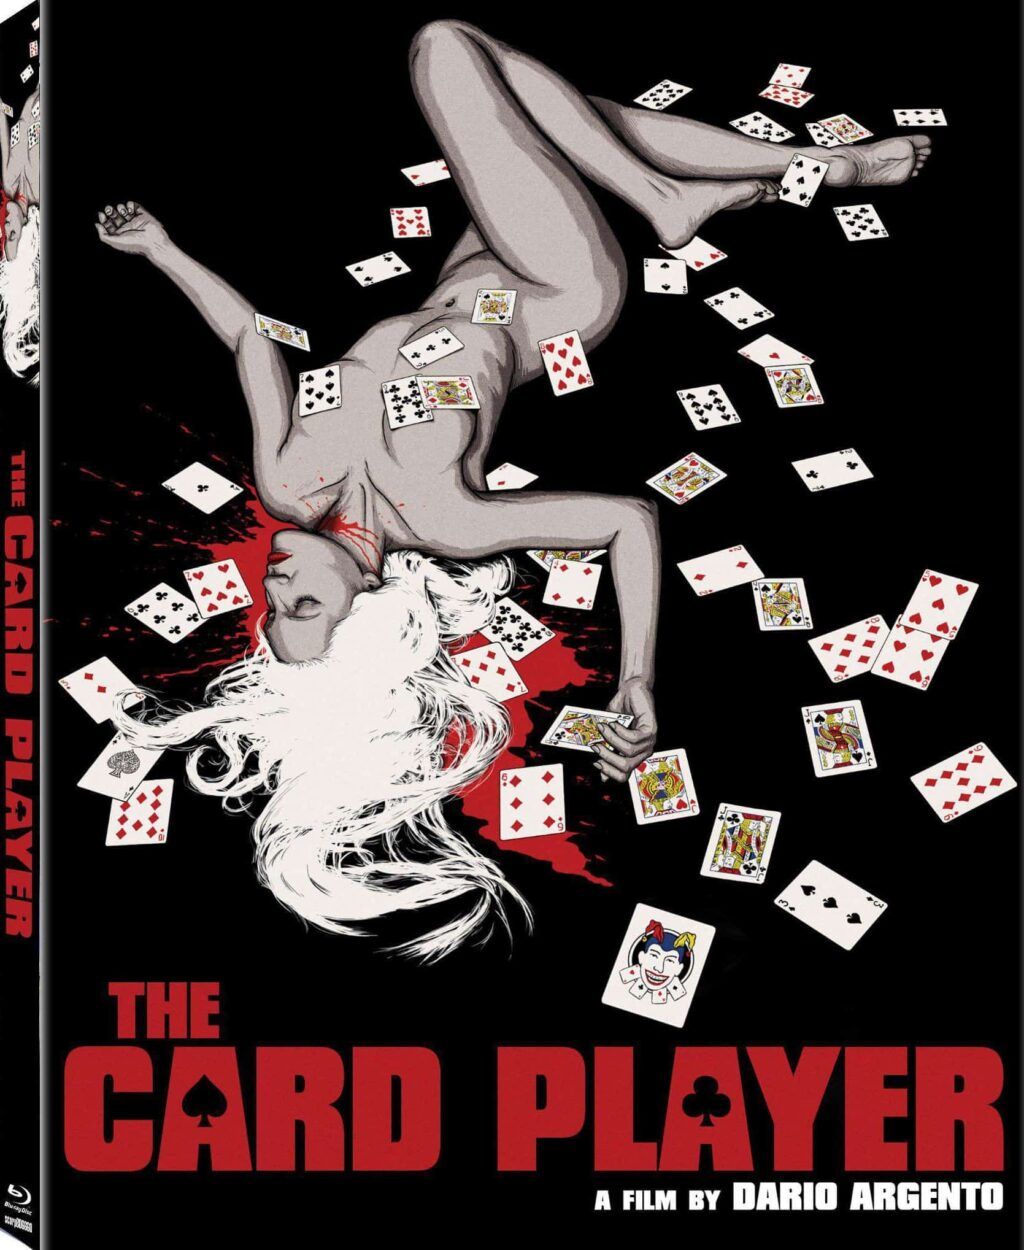 Dari oArgento THE CARD PLAYER Blu ray 1024x1250 - Dario Argento's THE CARD PLAYER & THE PHANTOM OF THE OPERA Now Available on Blu-ray